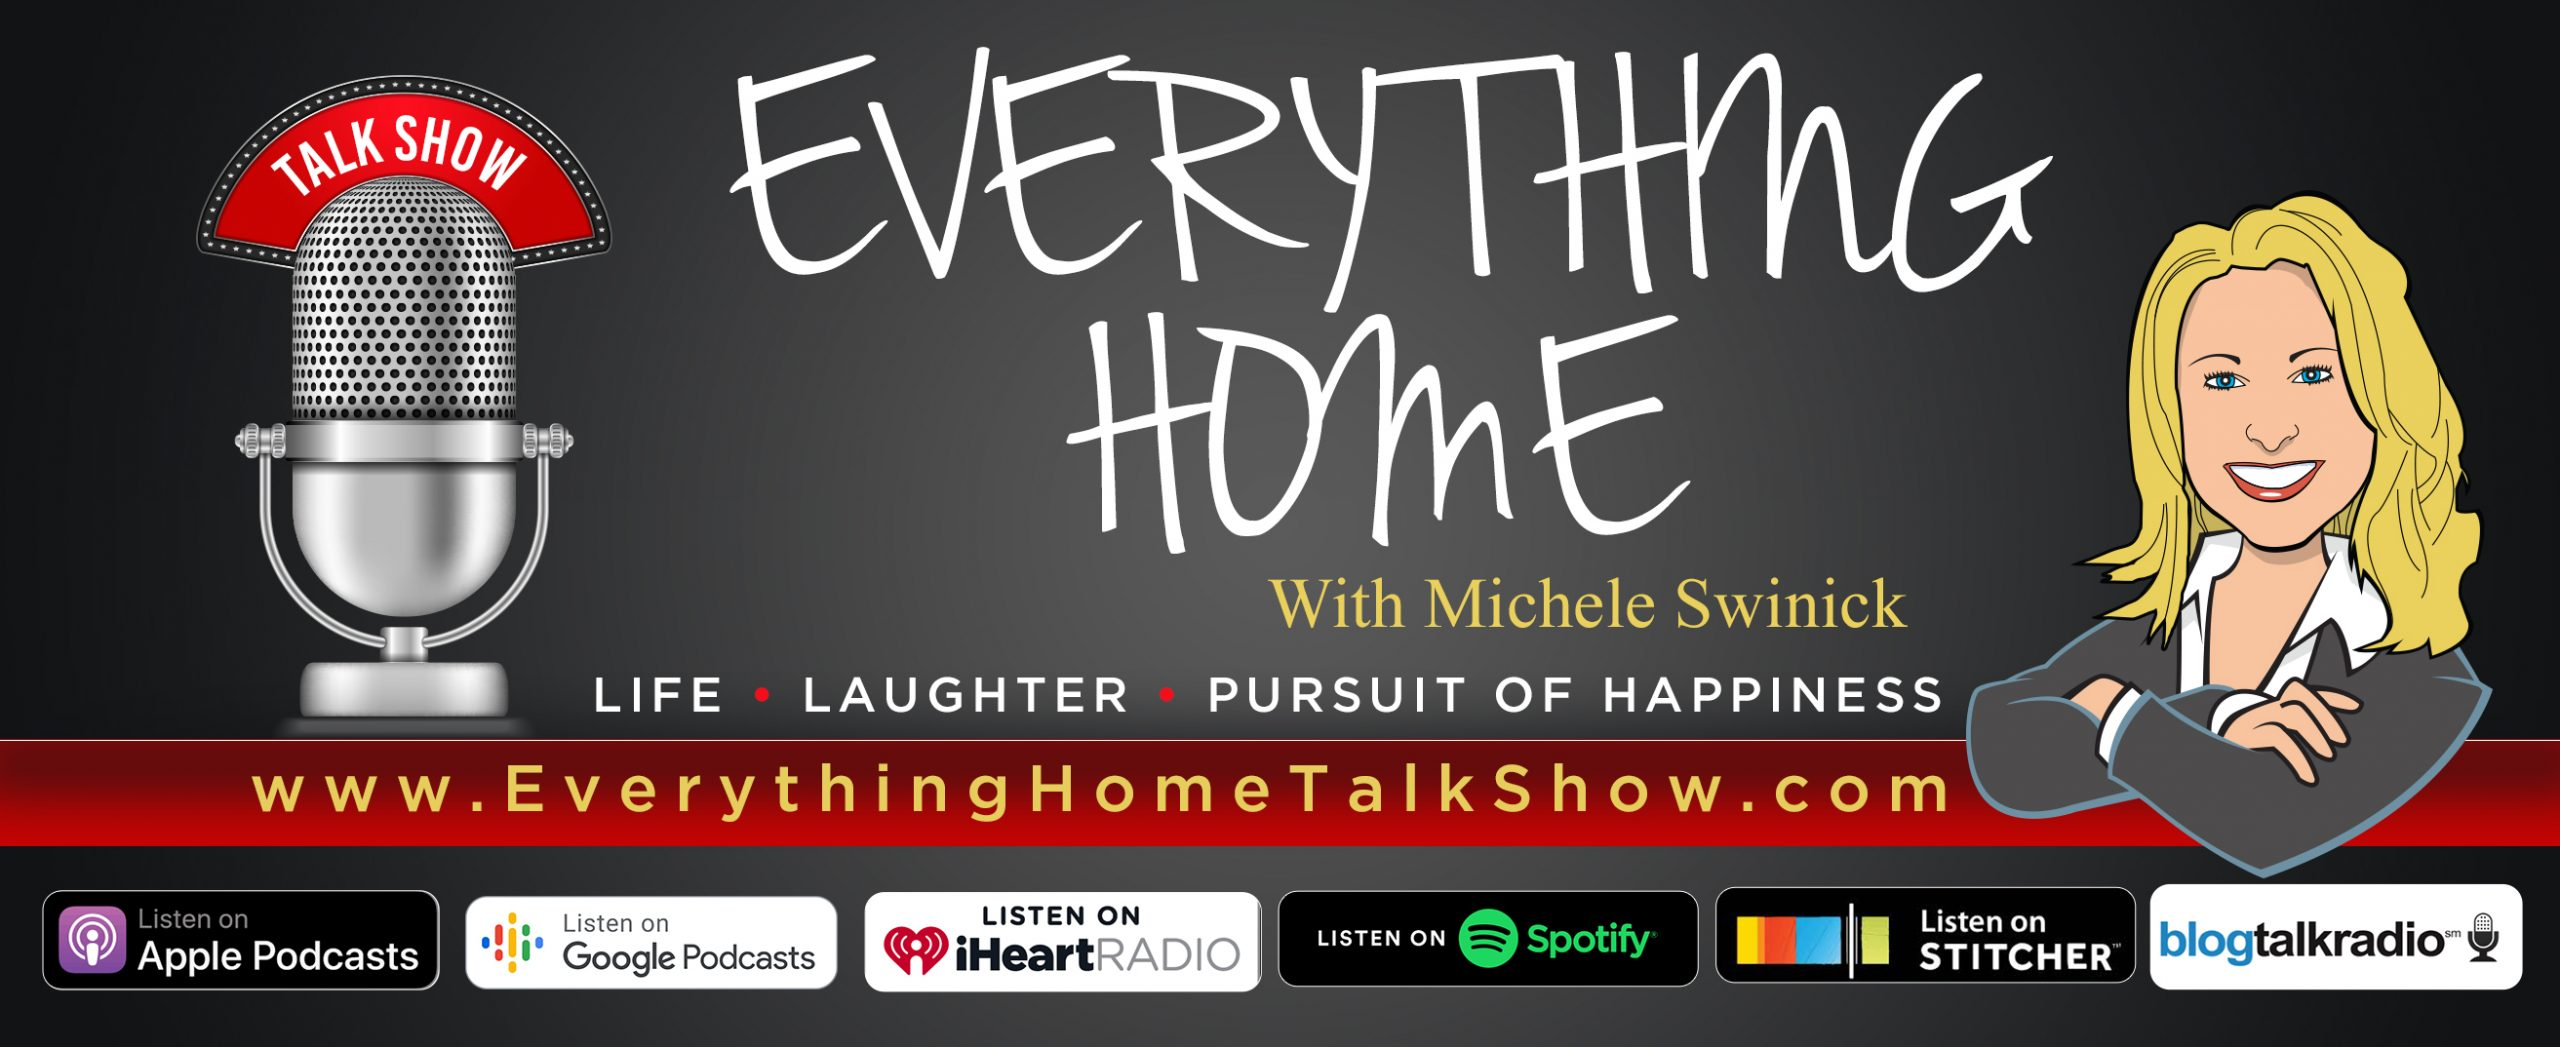 EVERYTHING HOME TALK RADIO SHOW & PODCAST - Michele Swinick